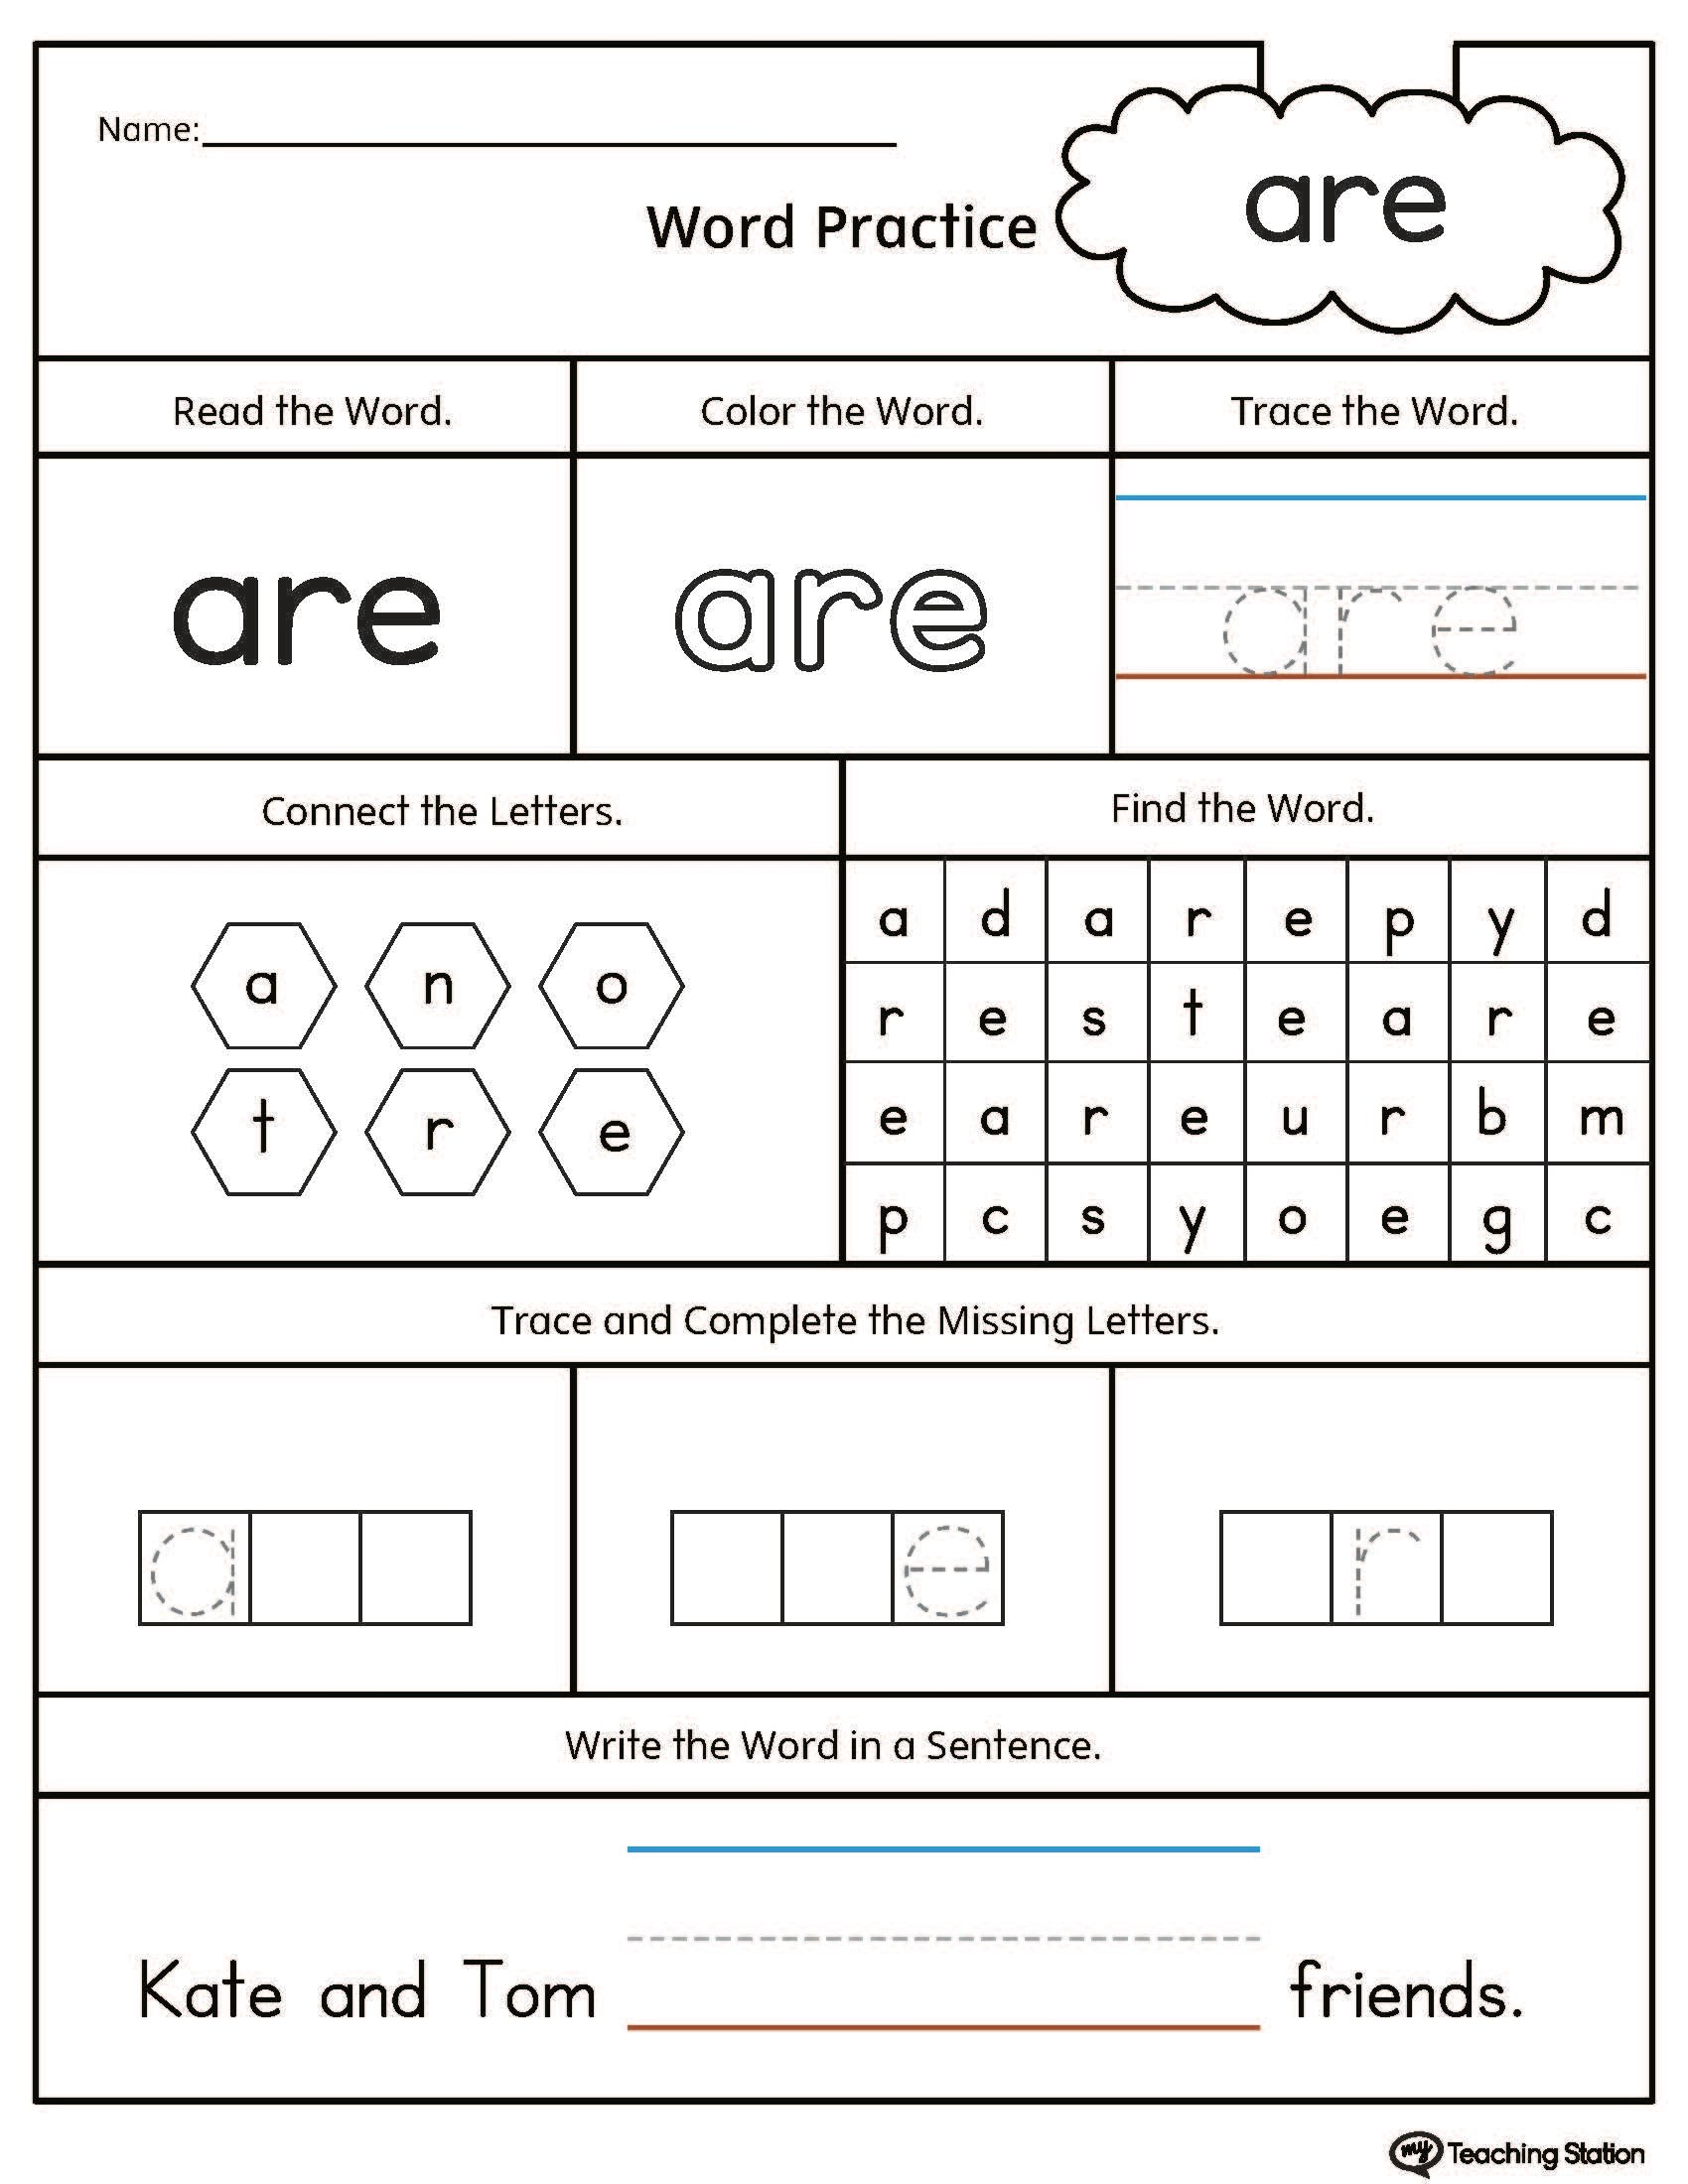 Ad Word Family Worksheet Printable